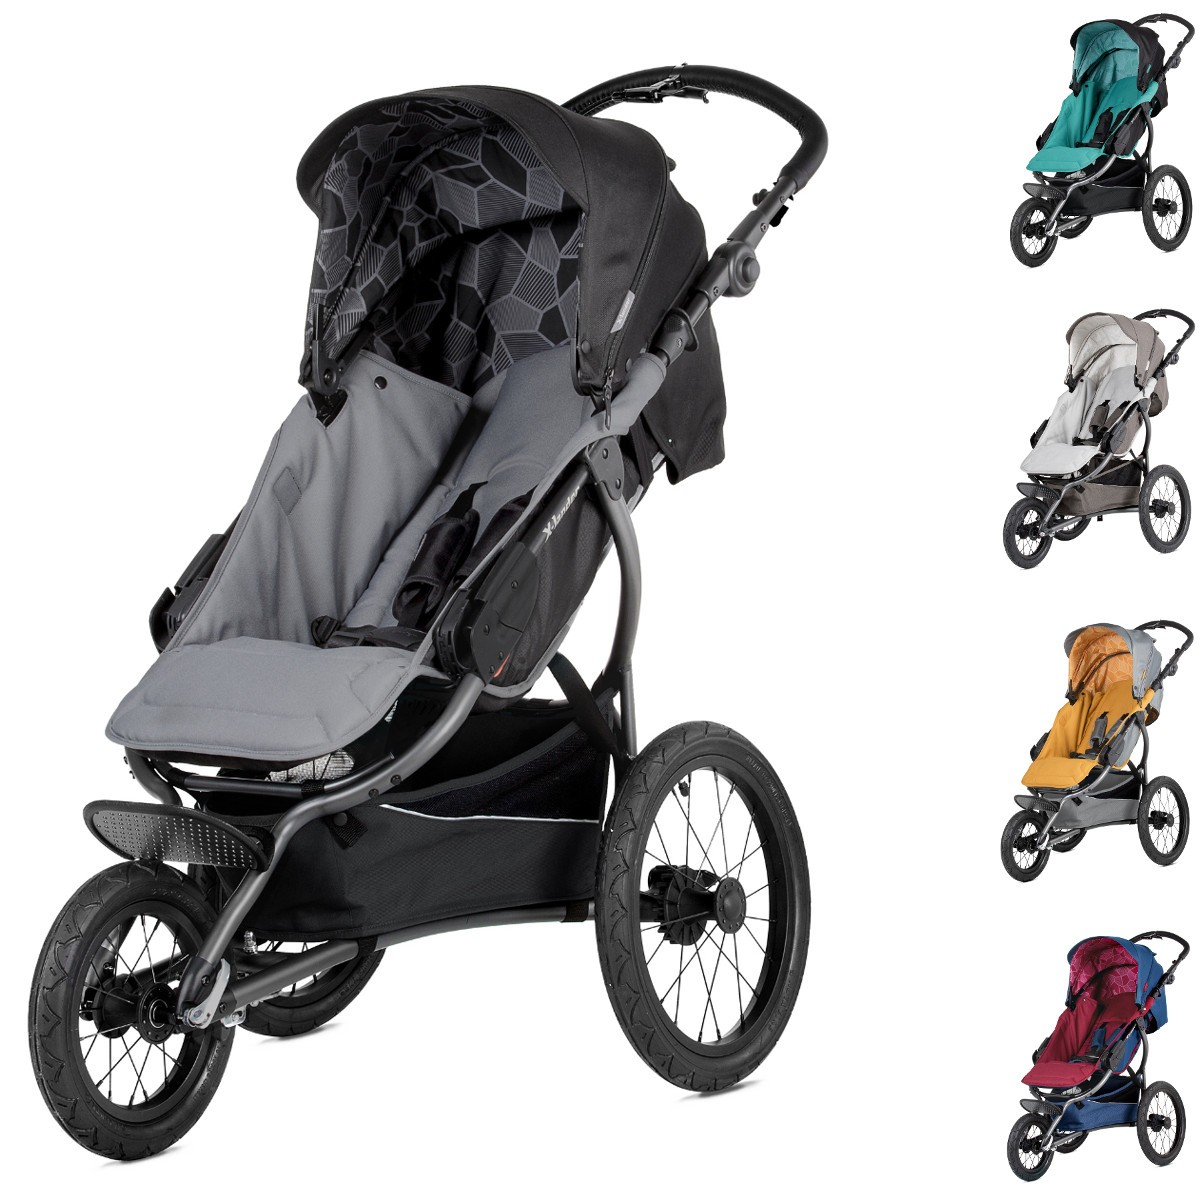 sportlicher jogging kinderwagen sportwagen buggy x run. Black Bedroom Furniture Sets. Home Design Ideas